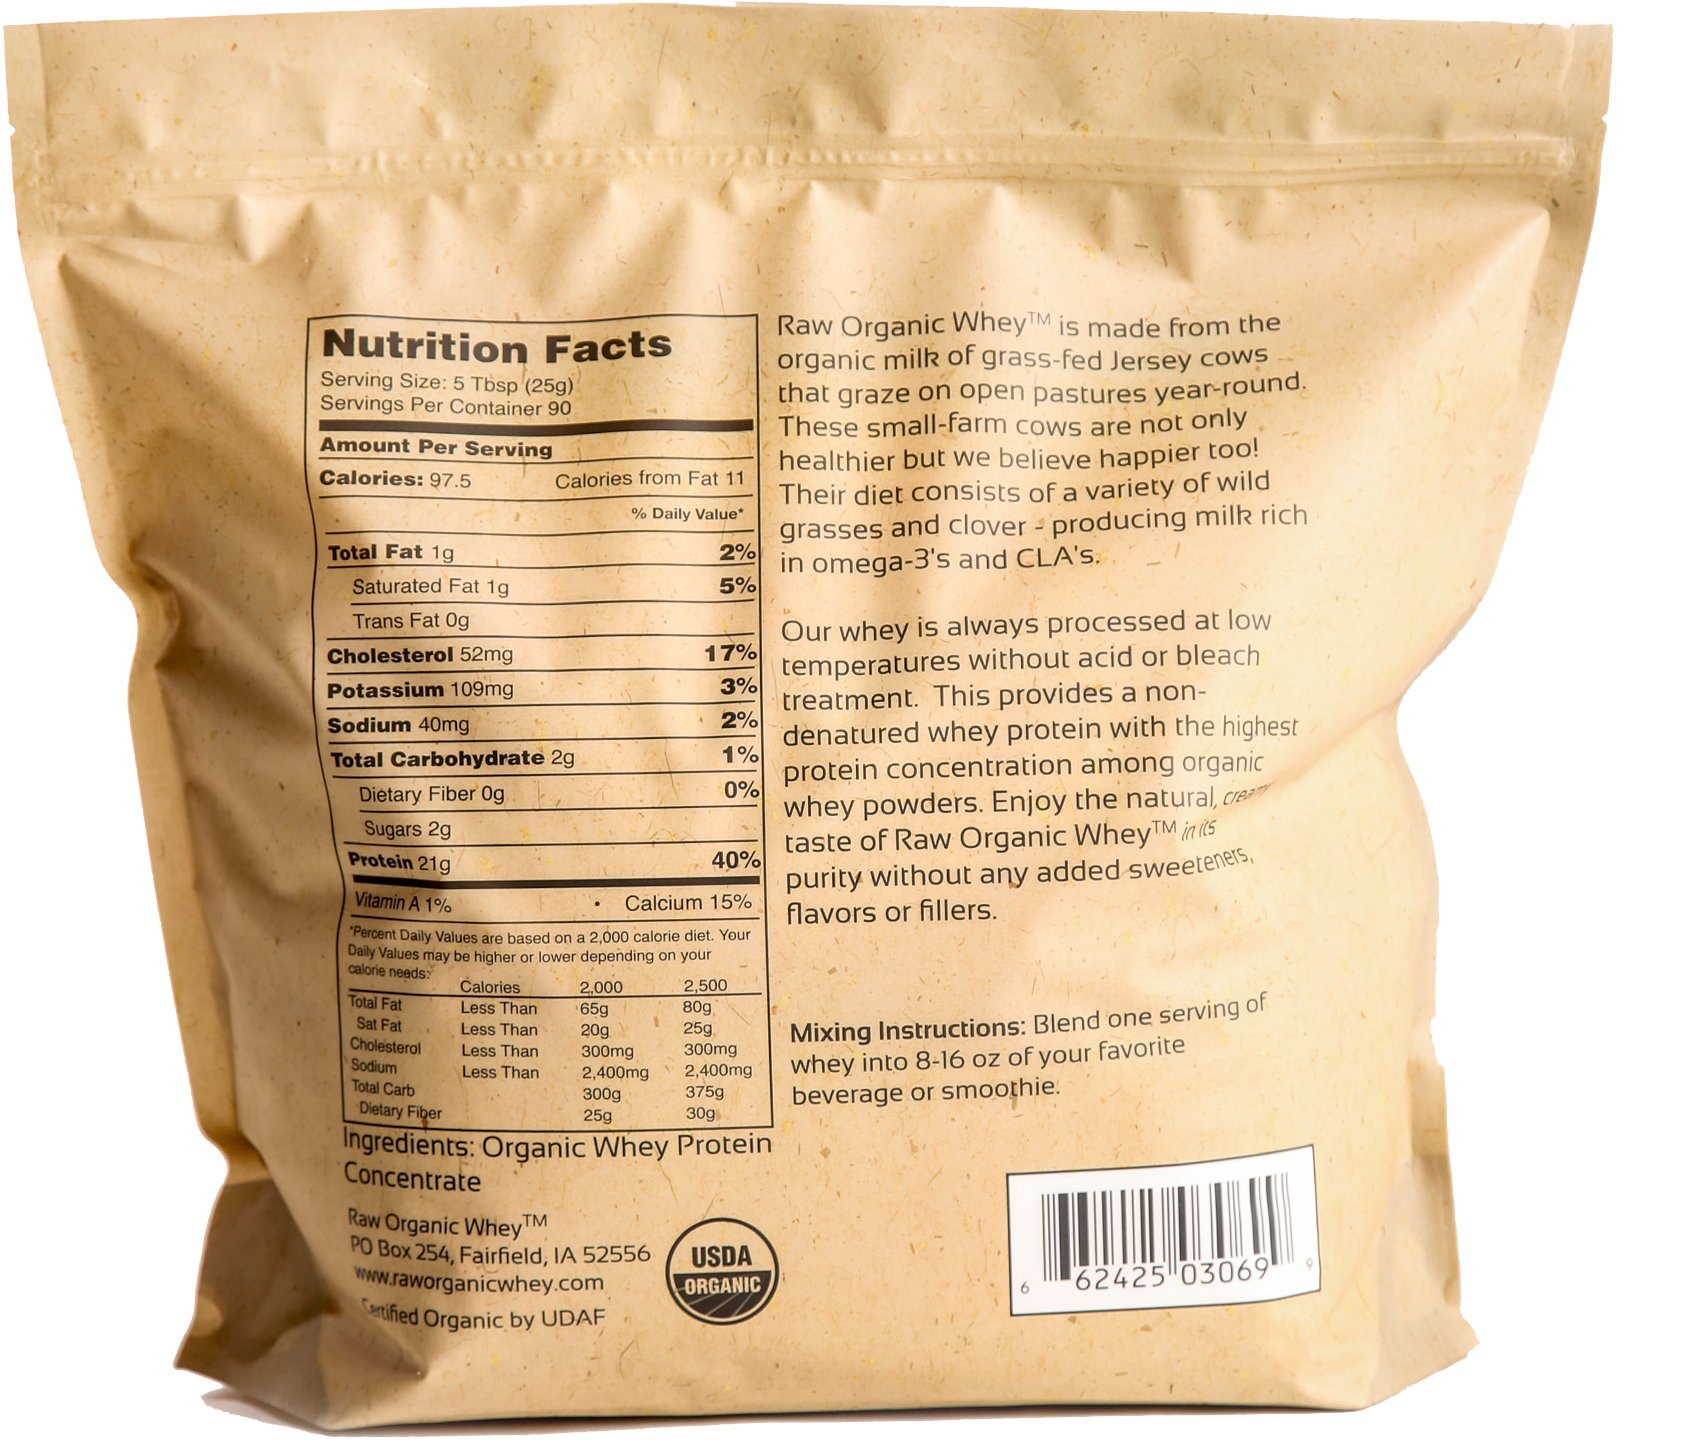 Raw Organic Whey 5LB - USDA Certified Organic Whey Protein Powder, Happy Healthy Cows, COLD PROCESSED Undenatured 100% Grass Fed + NON-GMO + rBGH Free + Gluten Free, Unflavored, Unsweetened(5 LB BULK) by Raw Organic Whey (Image #2)